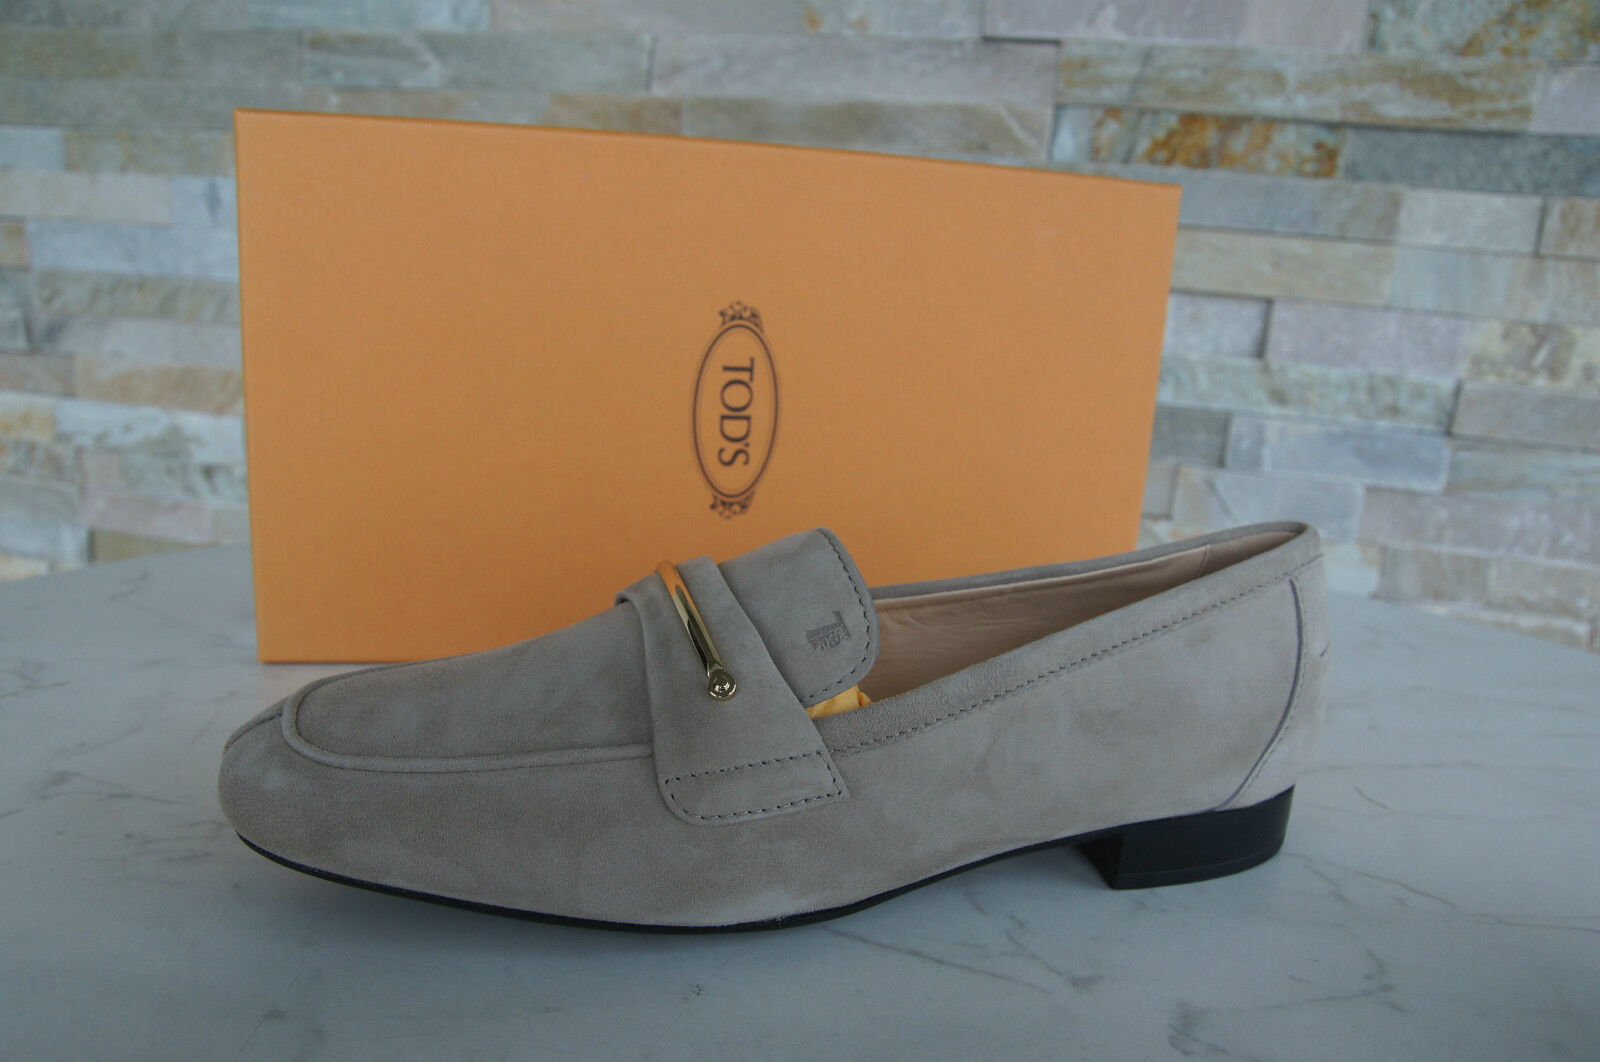 Tods Tod S Gr 37 Slipper shoes shoes Beige Lingotto Lingotto Lingotto New Previously 84ceb9